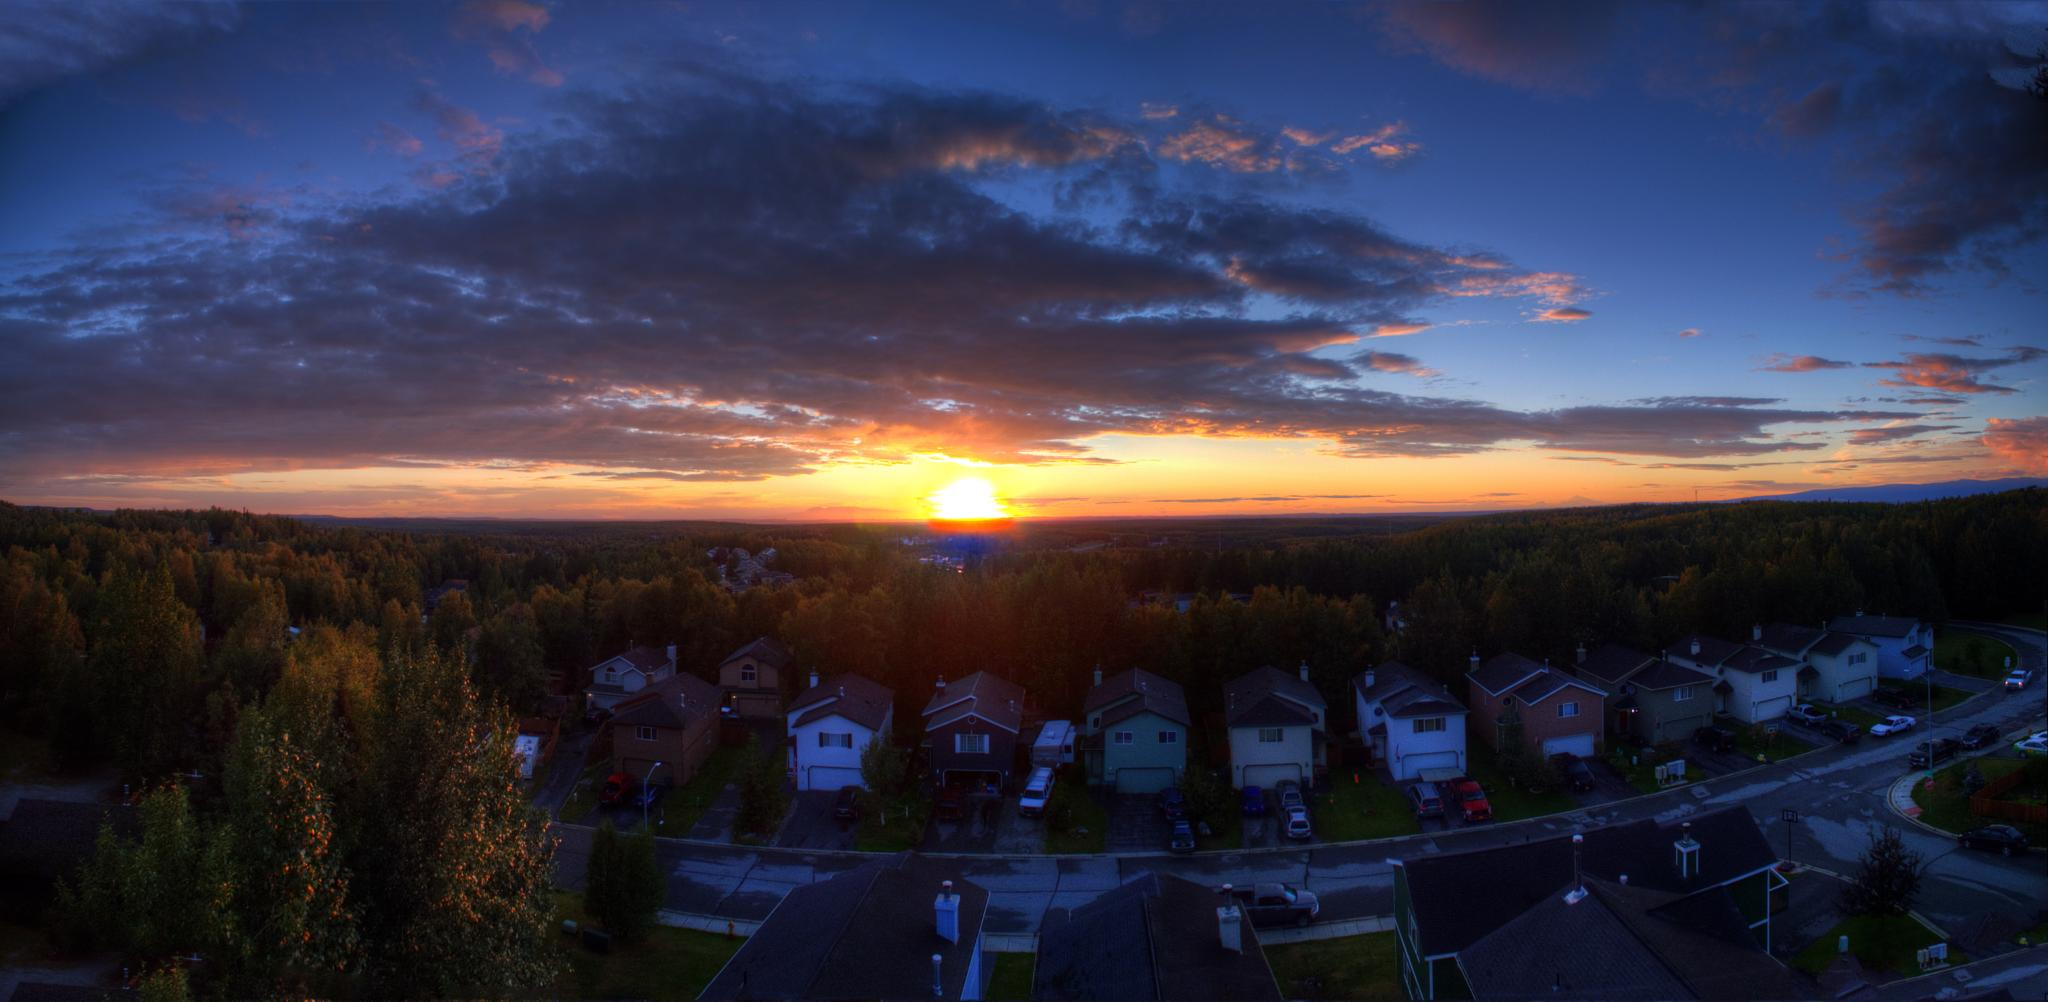 Sun Set Pano by Charles Sather